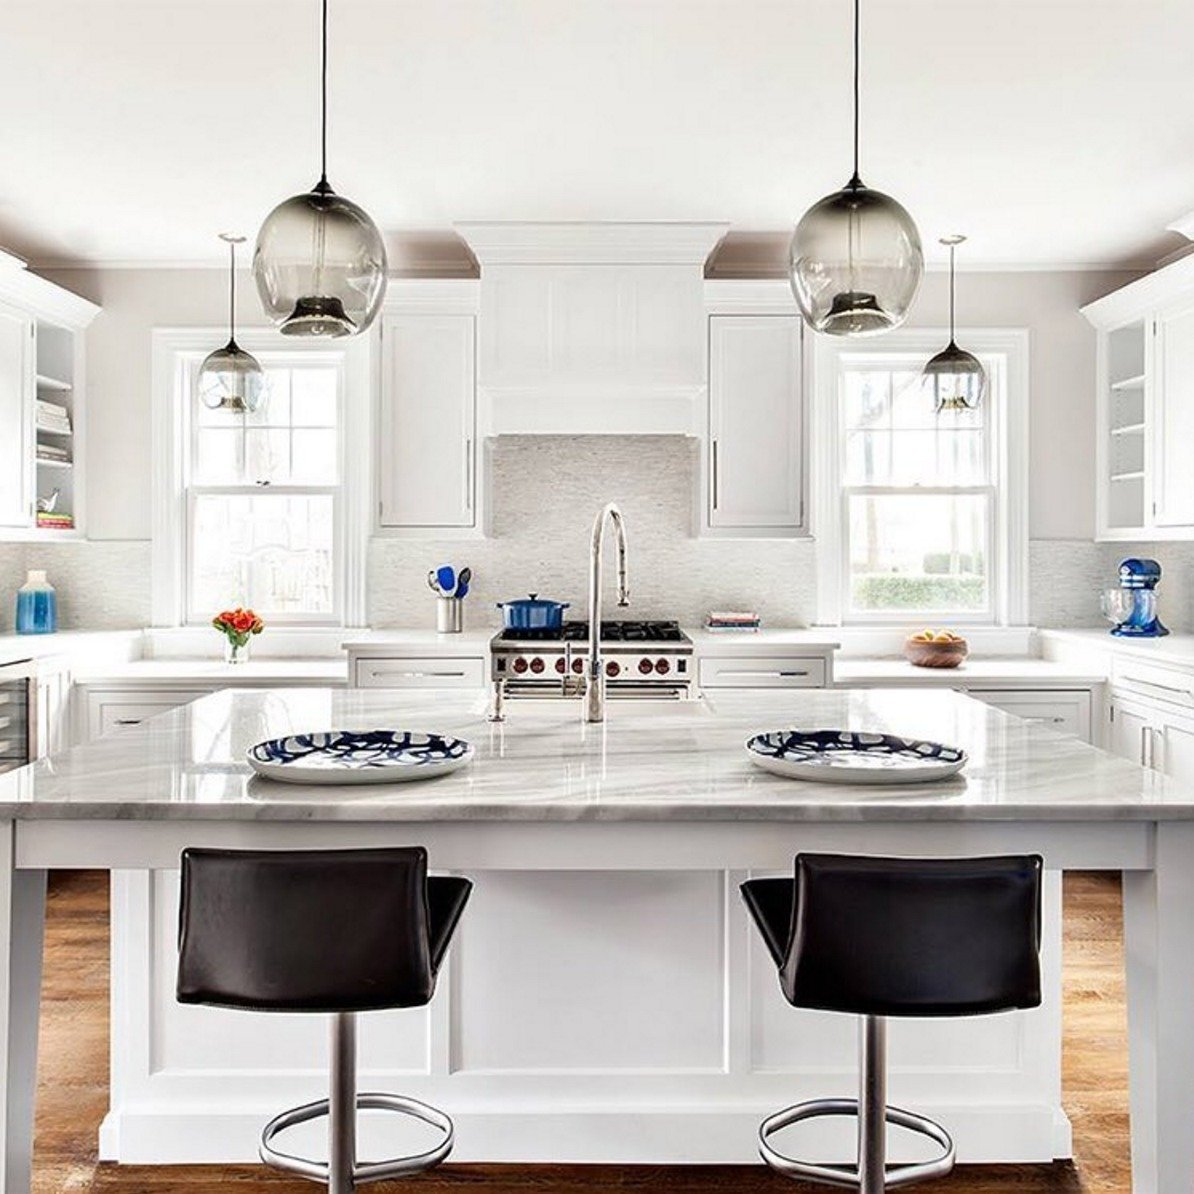 #Kitchen island and kitchen #counter #pendant #lighting come together in this #modern #interior by Clean Design Partners.